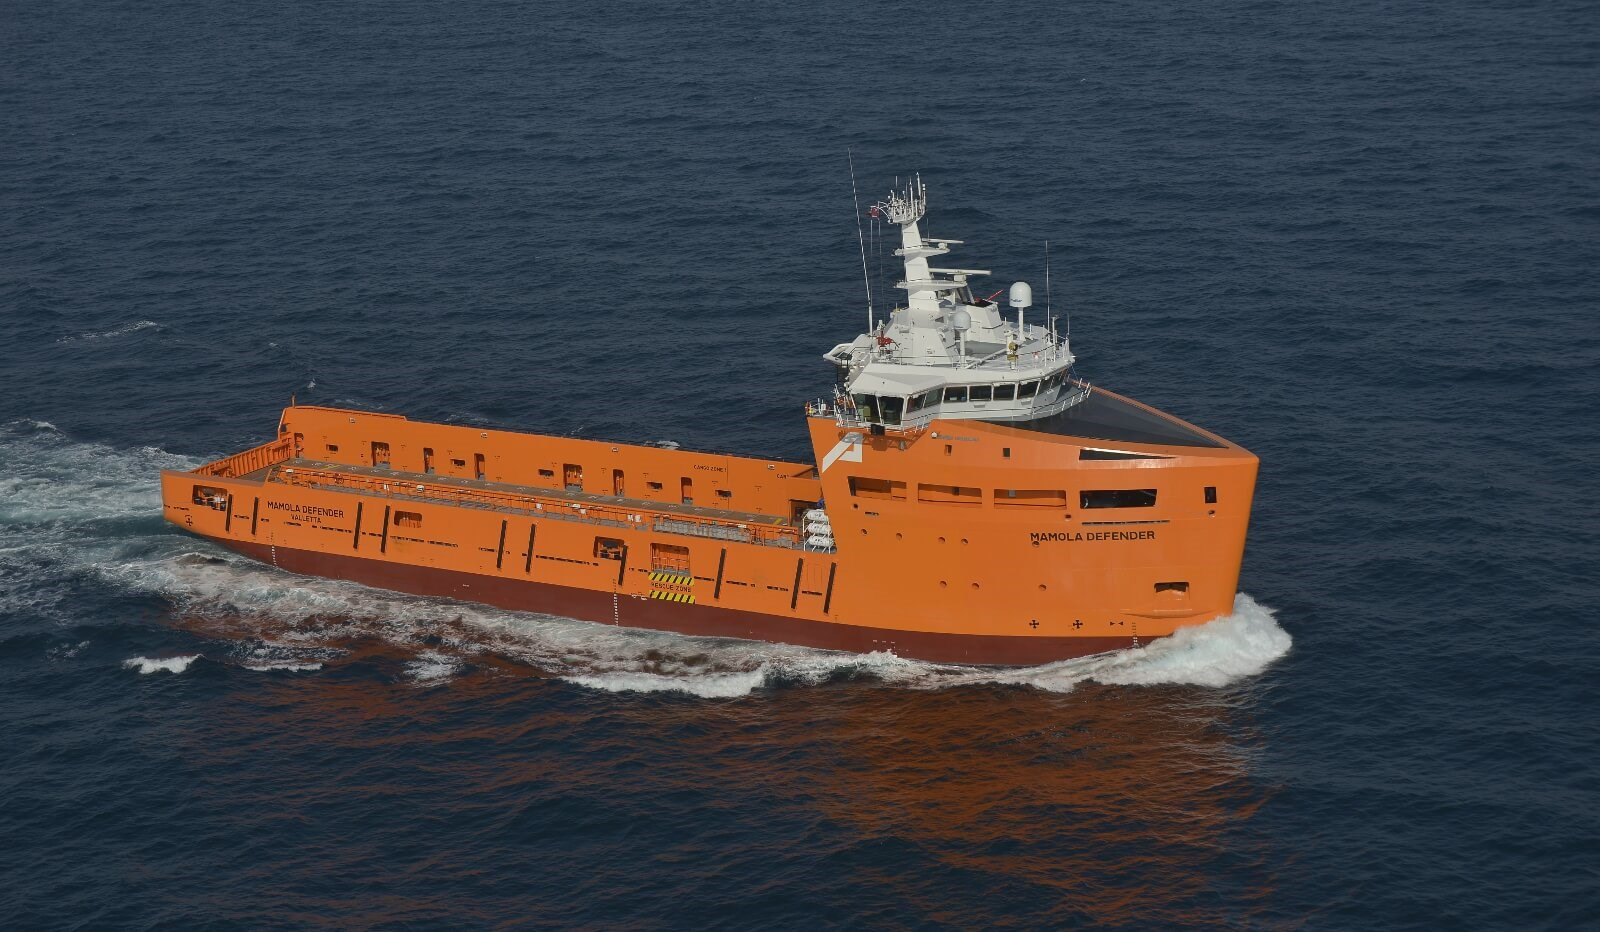 Damen Platform Supply Vessel 3300 of proven design